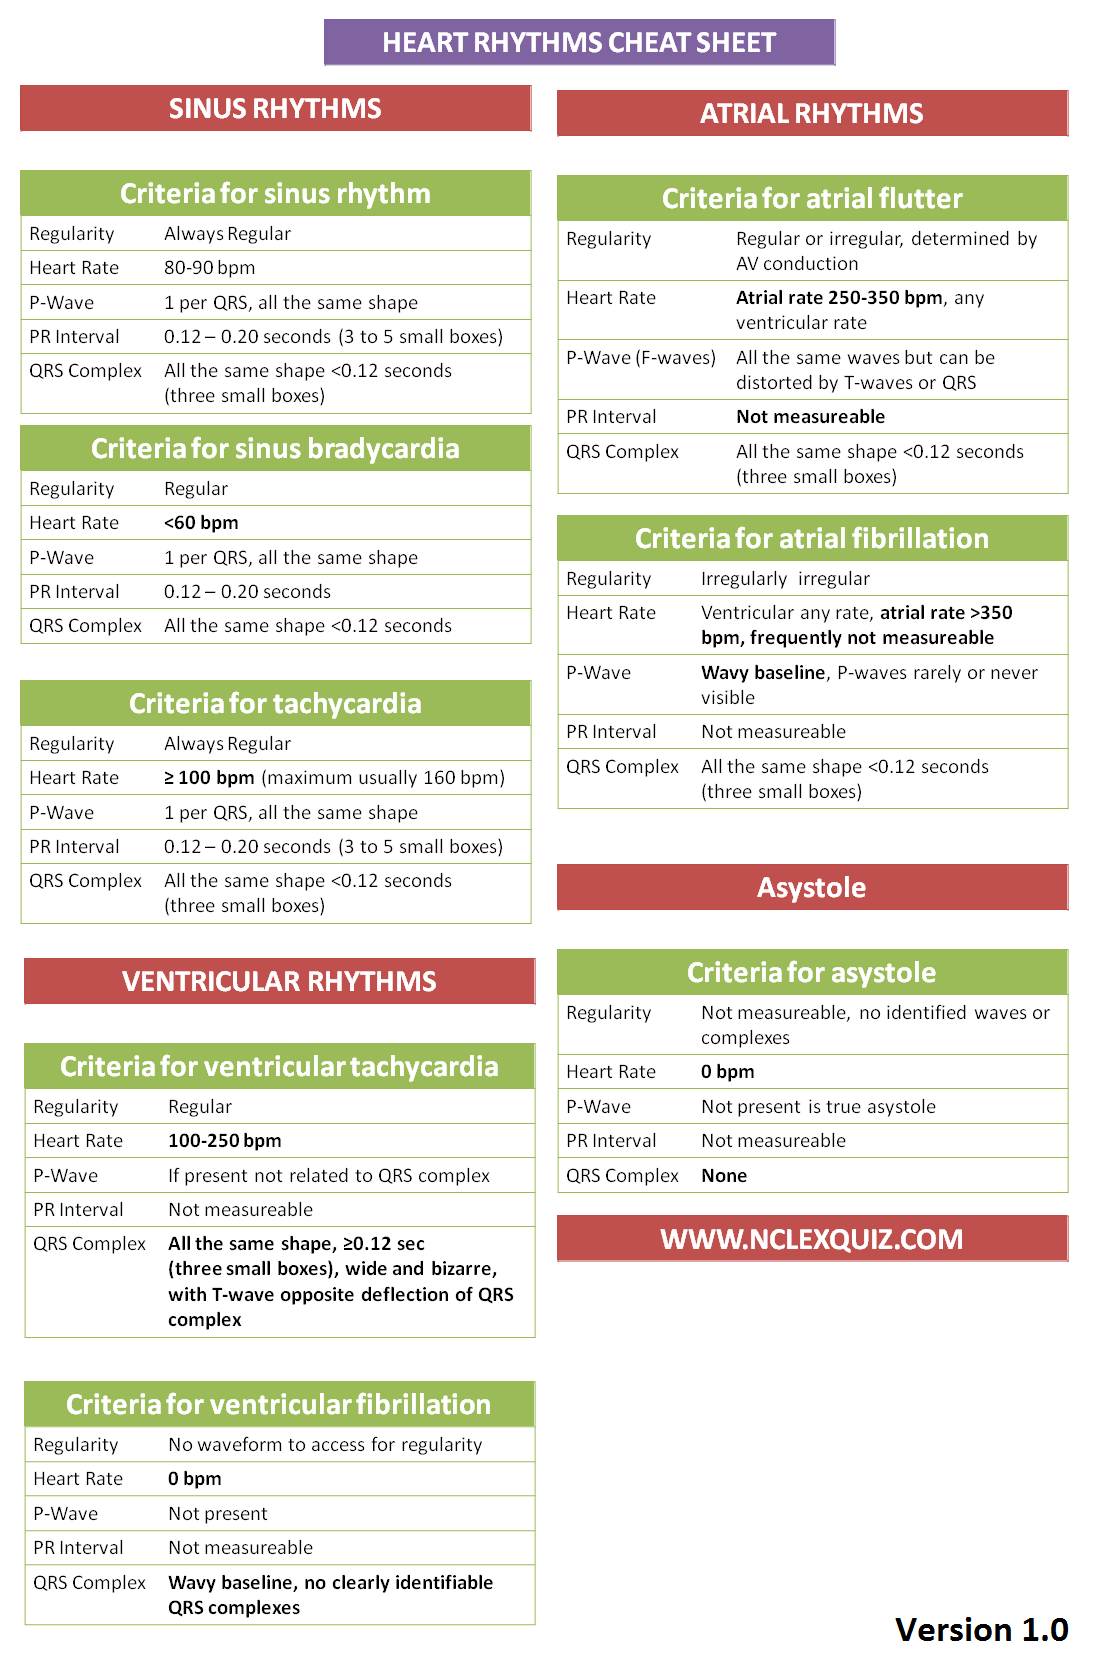 Criteria For Interpreting Cardiac Rhythms Cheatsheet  Cardiac